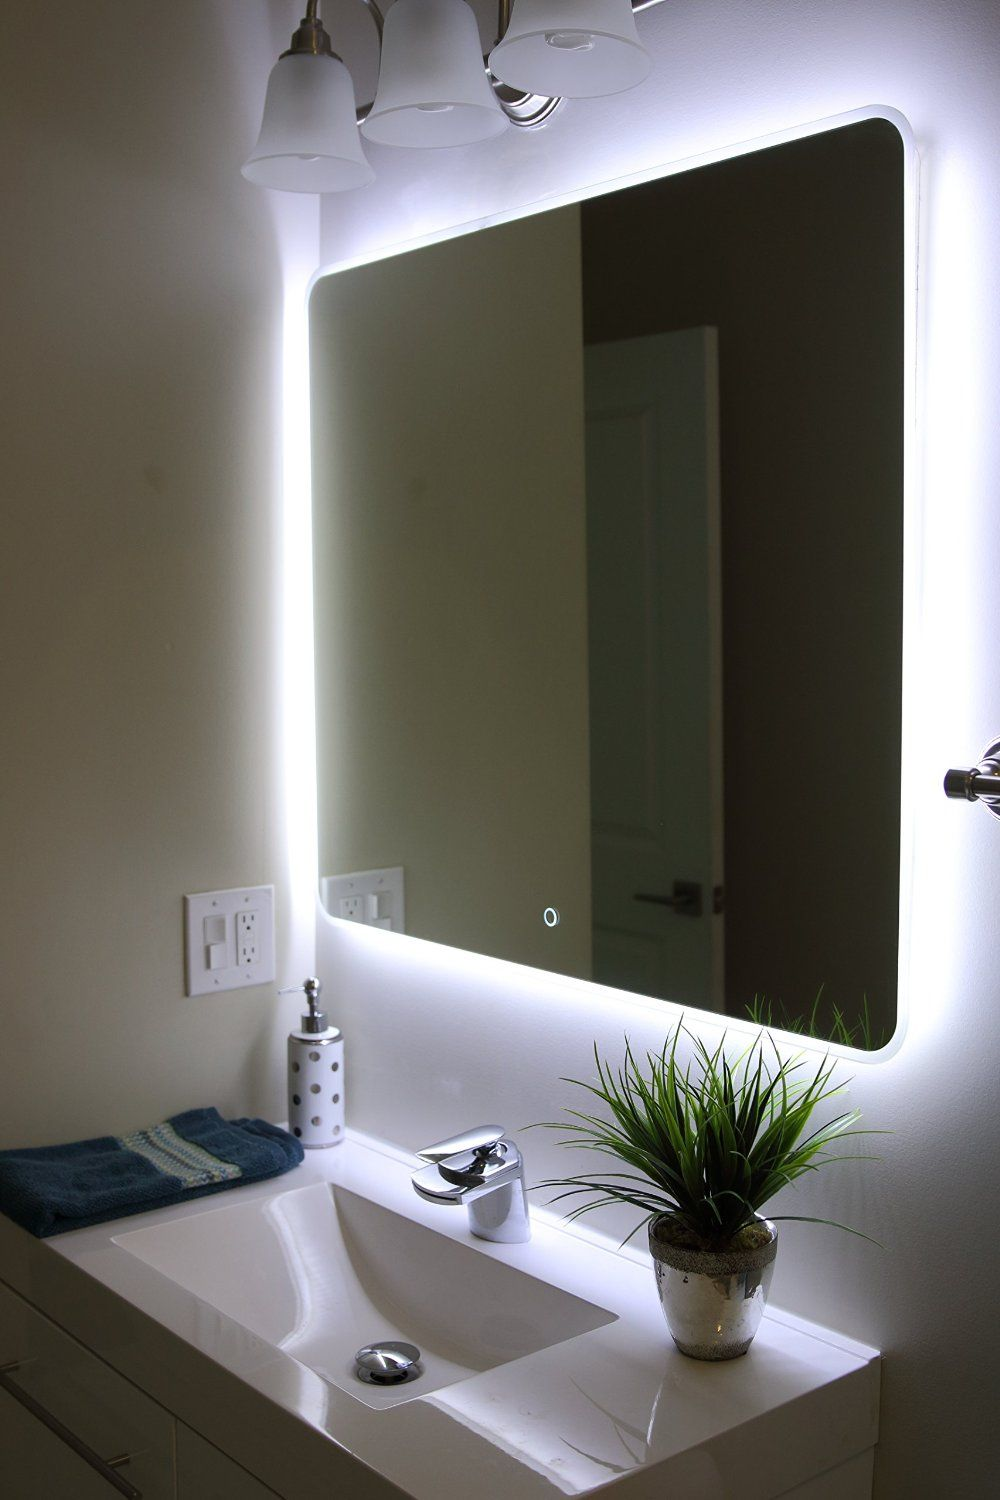 windbay backlit led light bathroom vanity sink mirror. illuminated